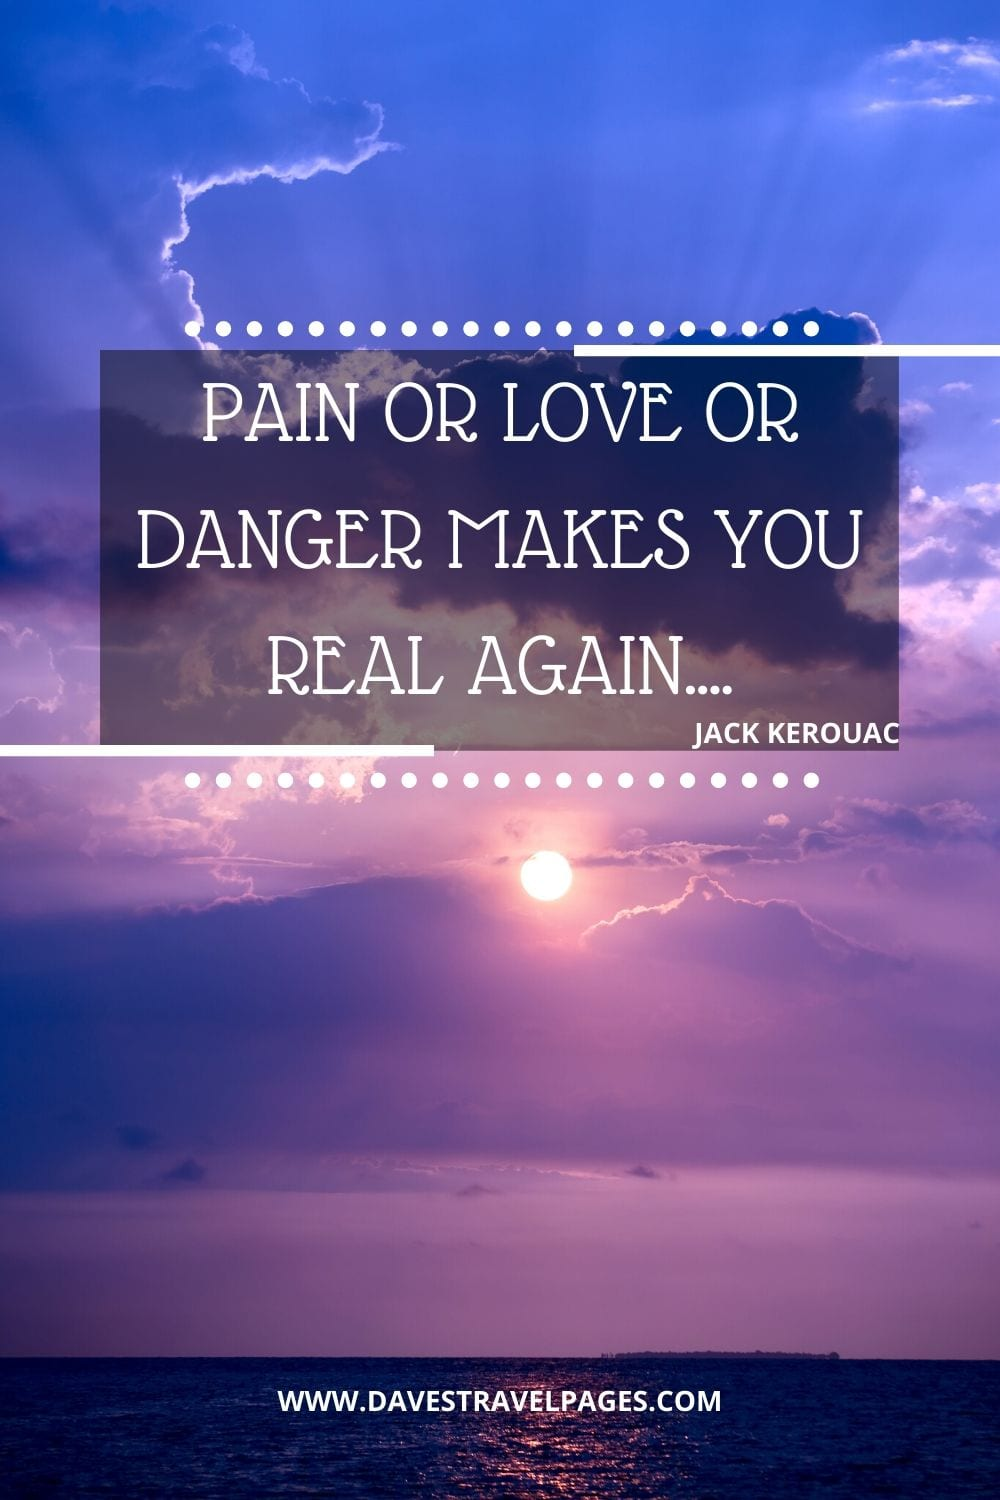 "Inspirational Jack Kerouac Quote: ""Pain or love or danger makes you real again...."" - The Dharma Bums"